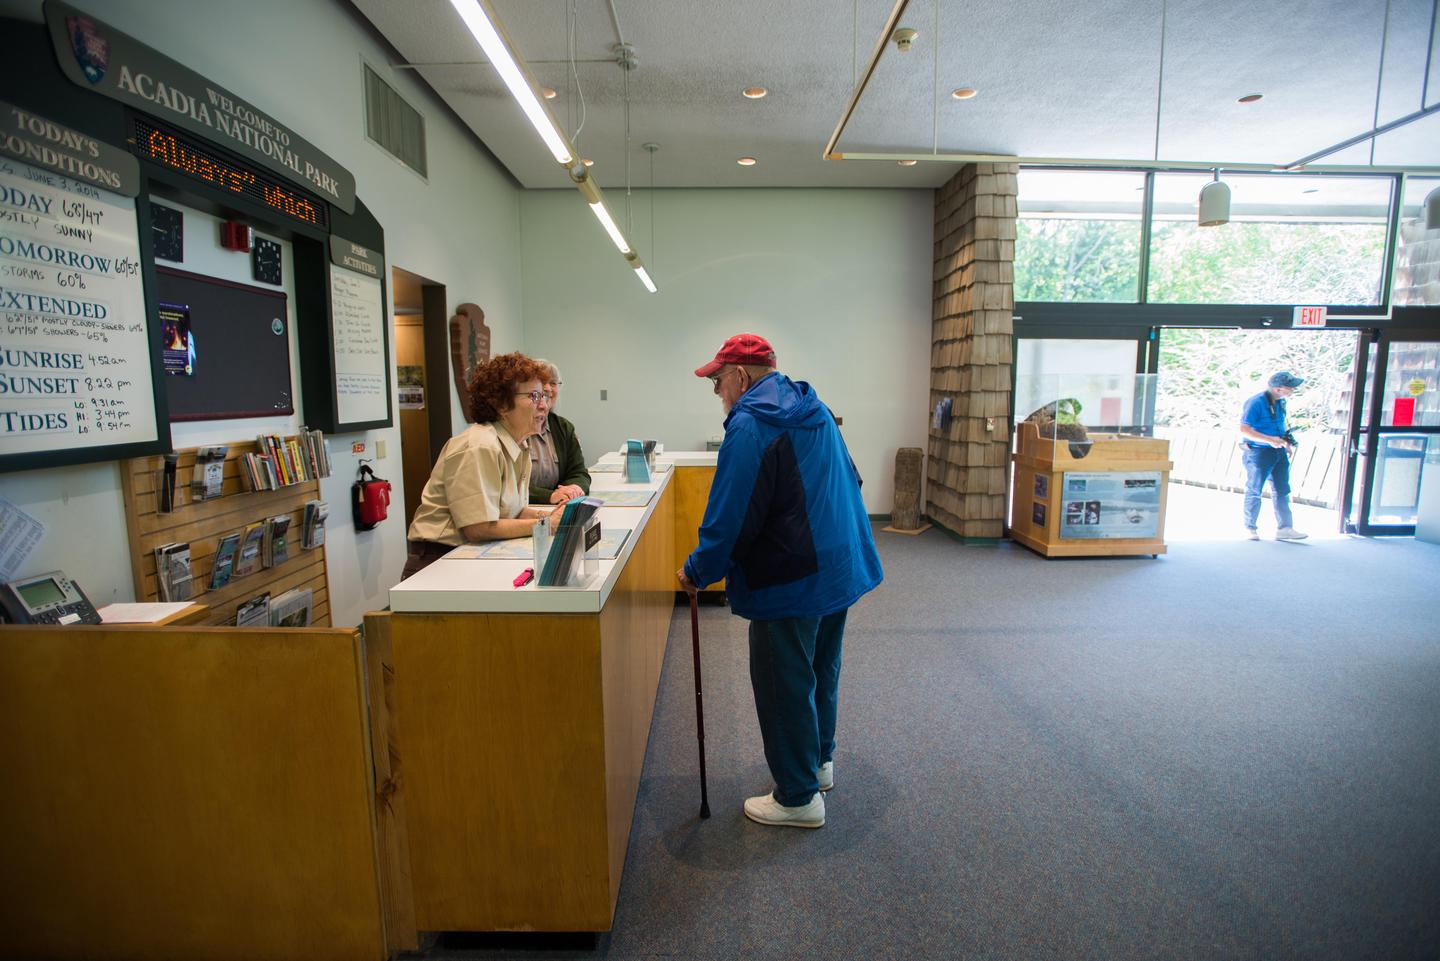 Hulls Cove Visitor Center interiorPark entrance passes can be purchased at Hulls Cove Visitor Center